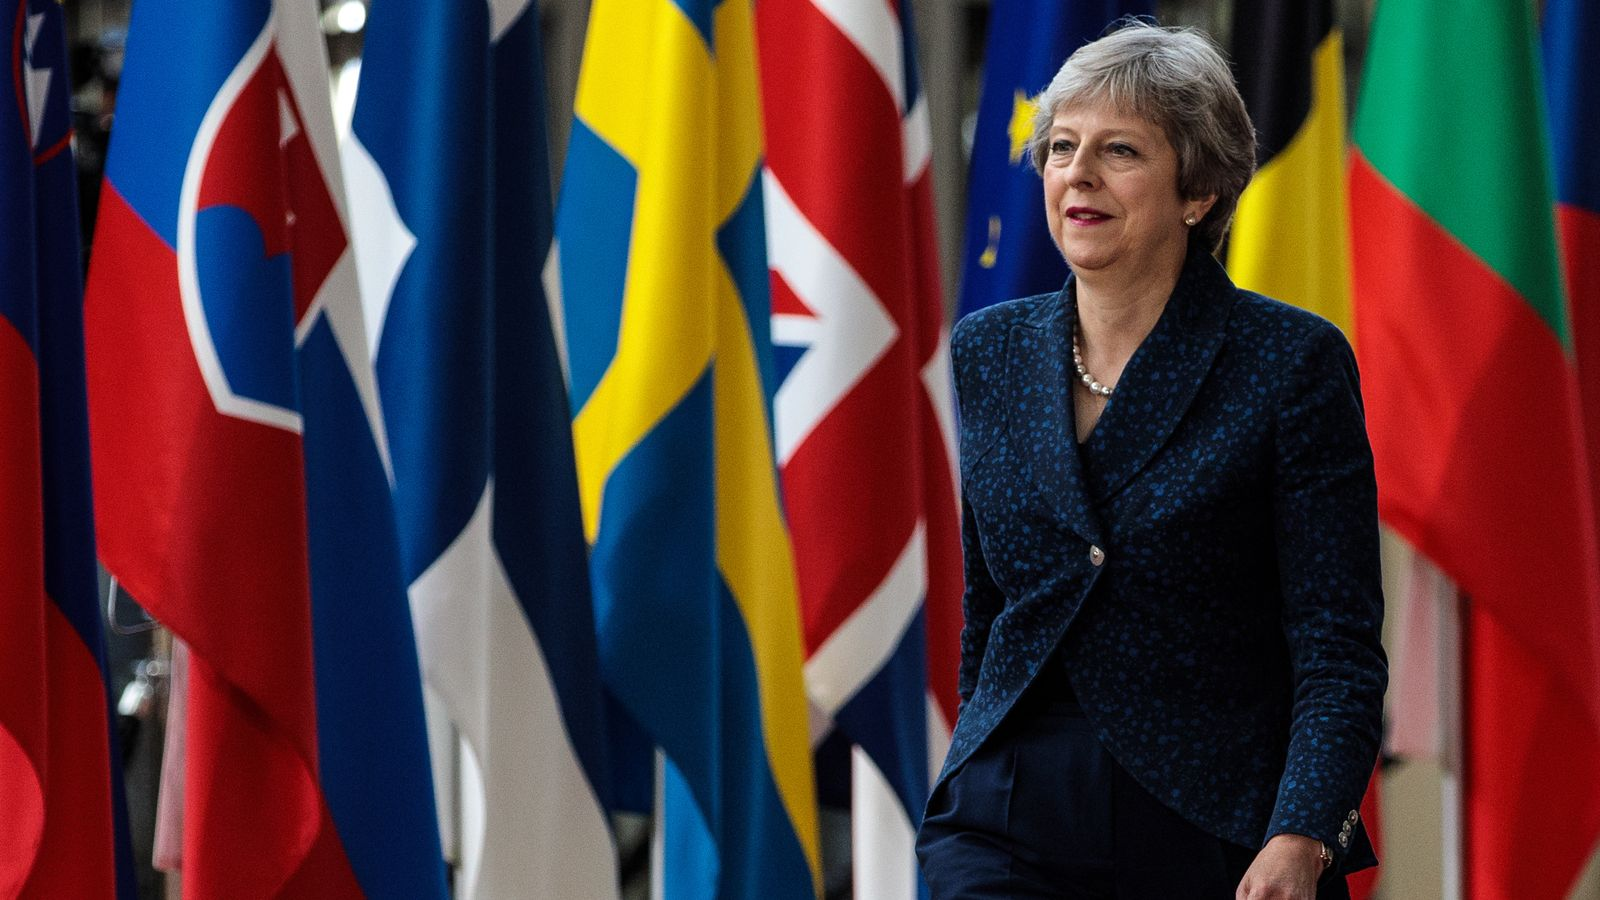 PM meets her cabinet as the European Council prepares to discuss Brexit